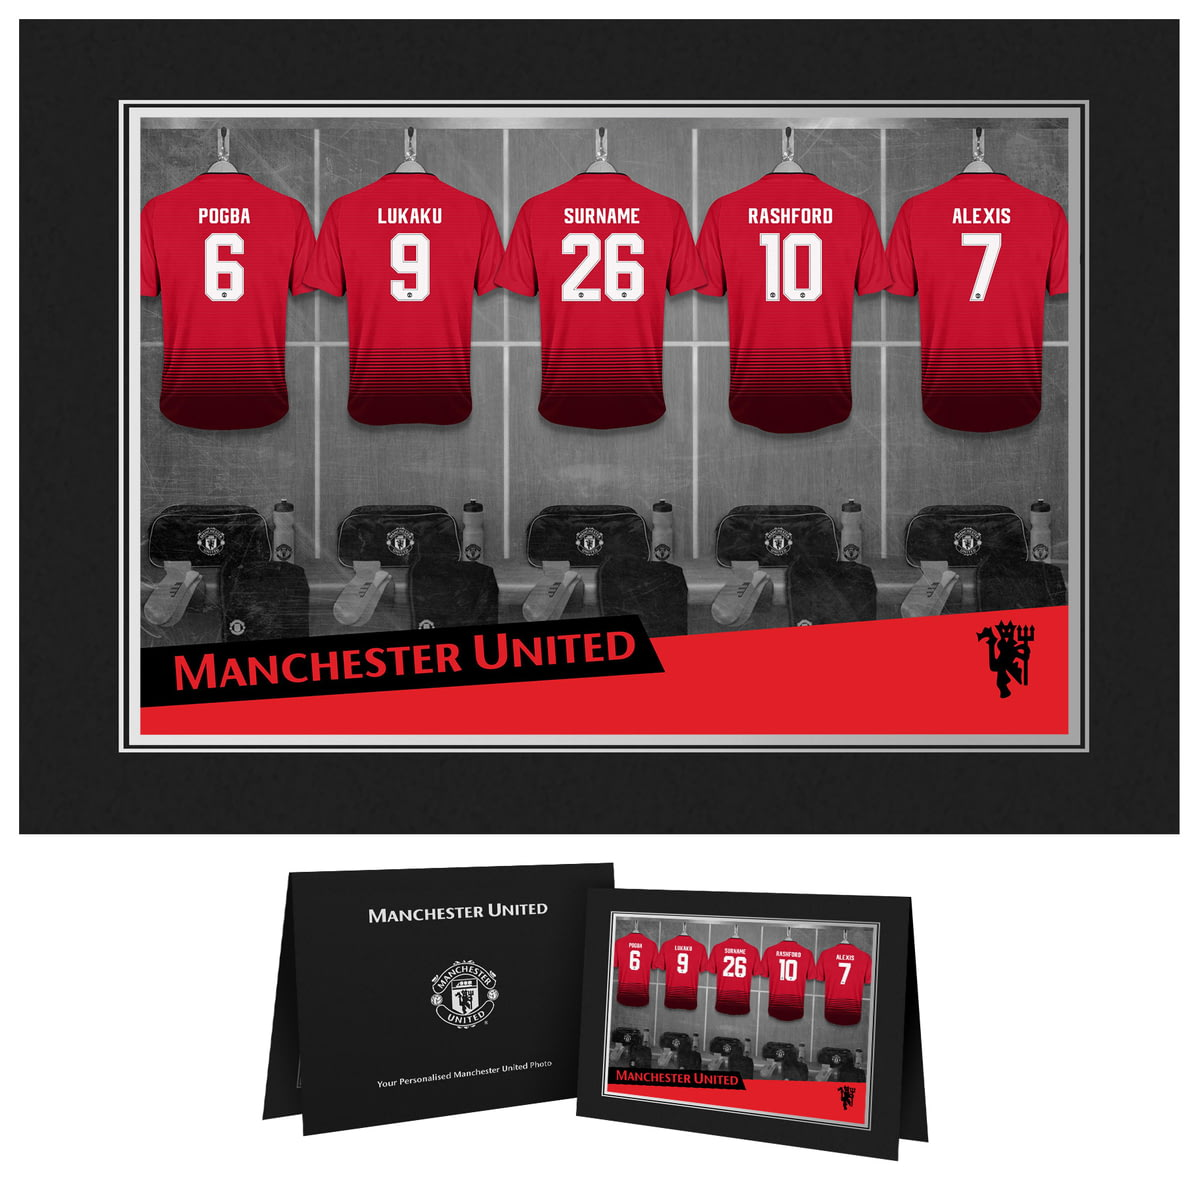 Personalised Manchester United Fc 9x6 Dressing Room Shirts Photo Folder From Go Find A Gift